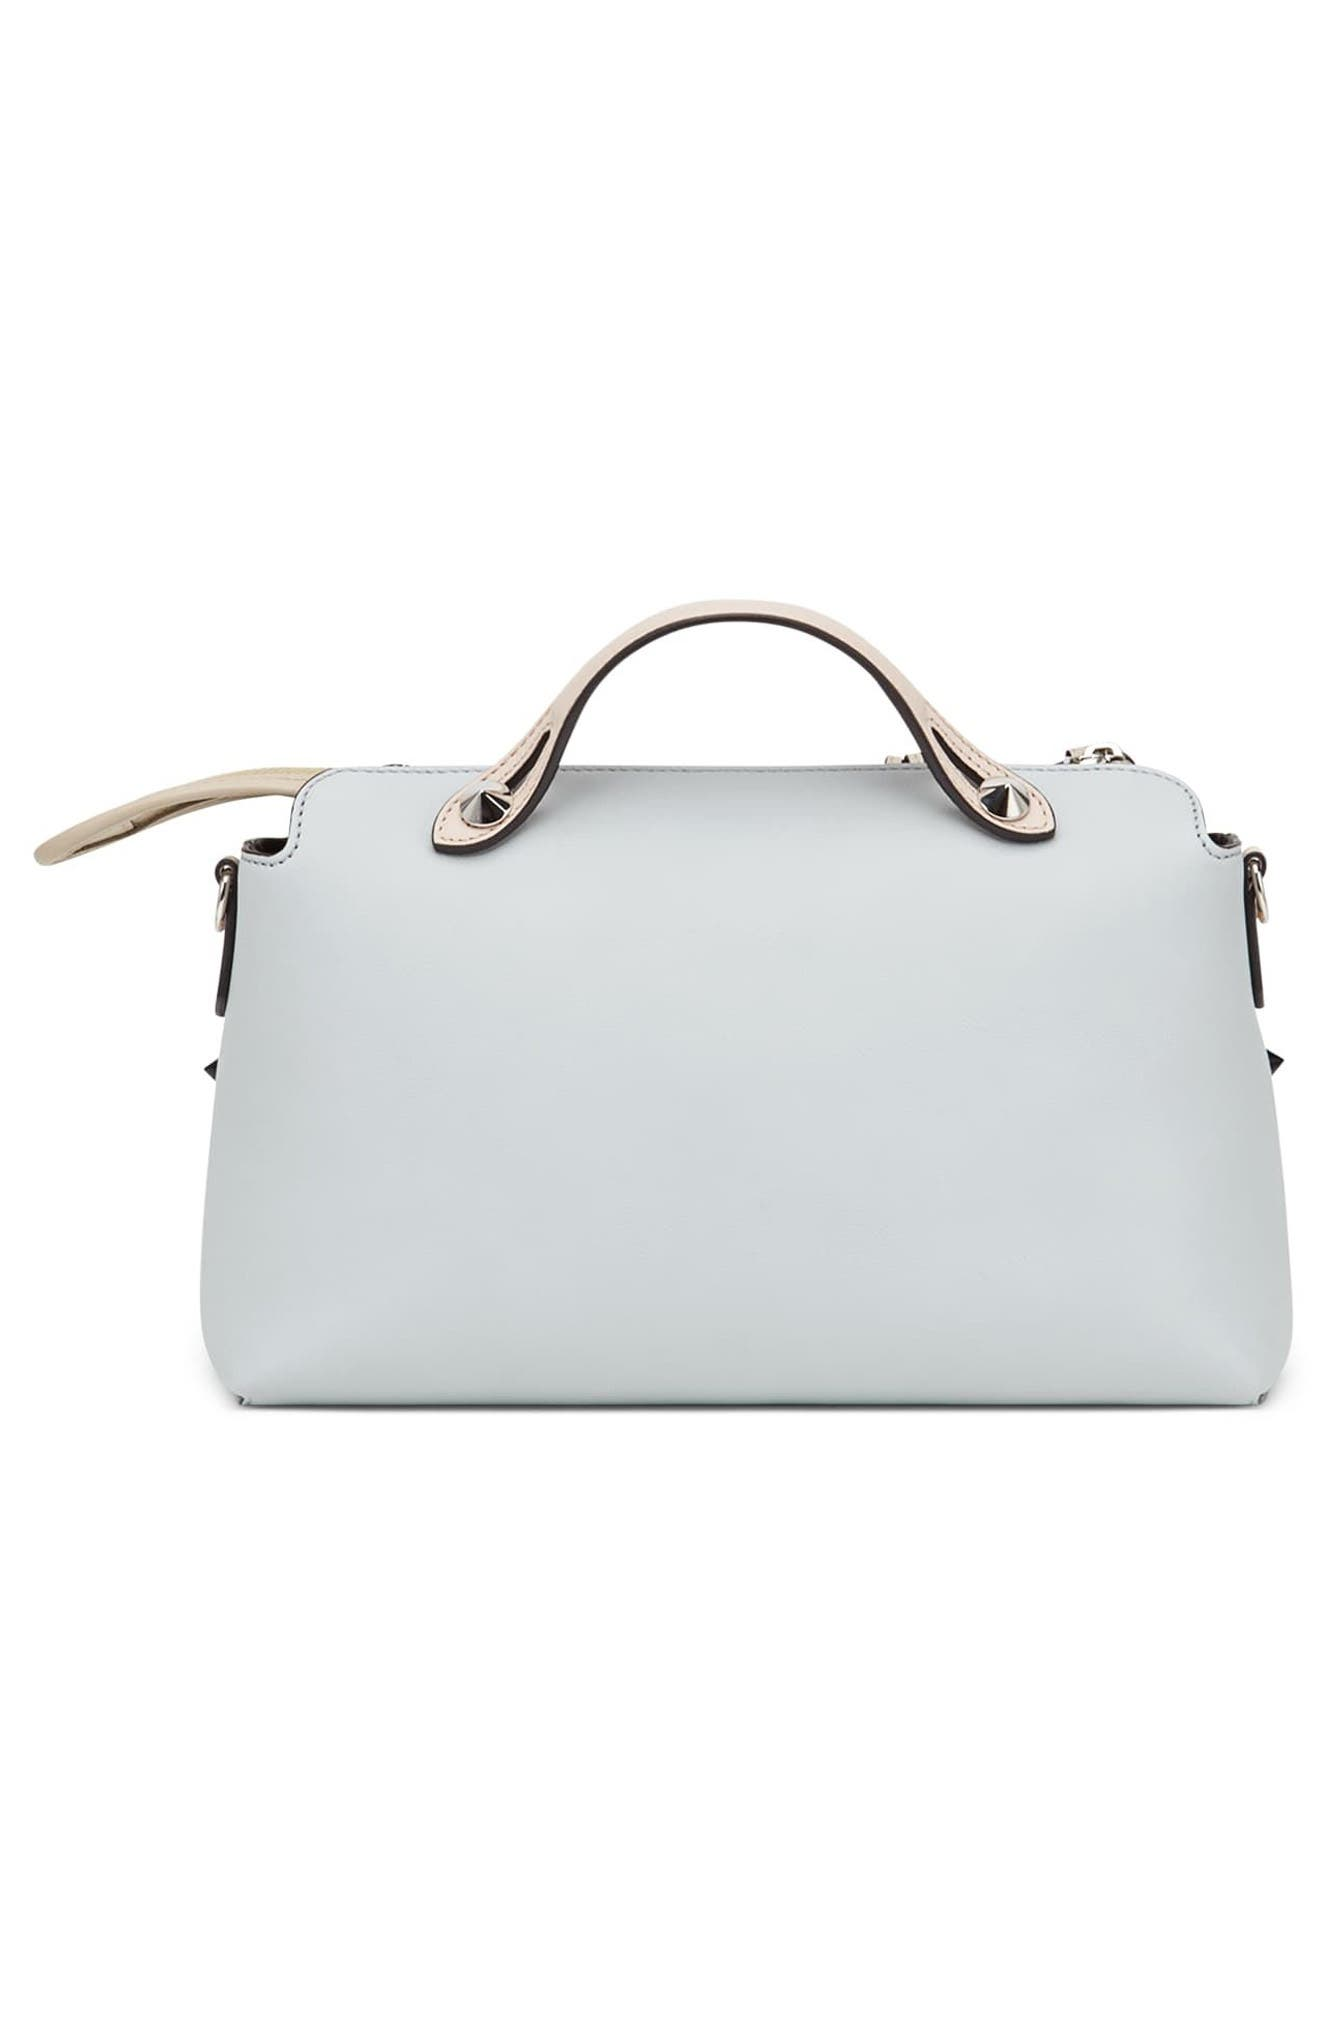 By the Way - Monster Eyes Leather Shoulder Bag,                             Alternate thumbnail 2, color,                             Grigio Perla/ Nuvola Multi